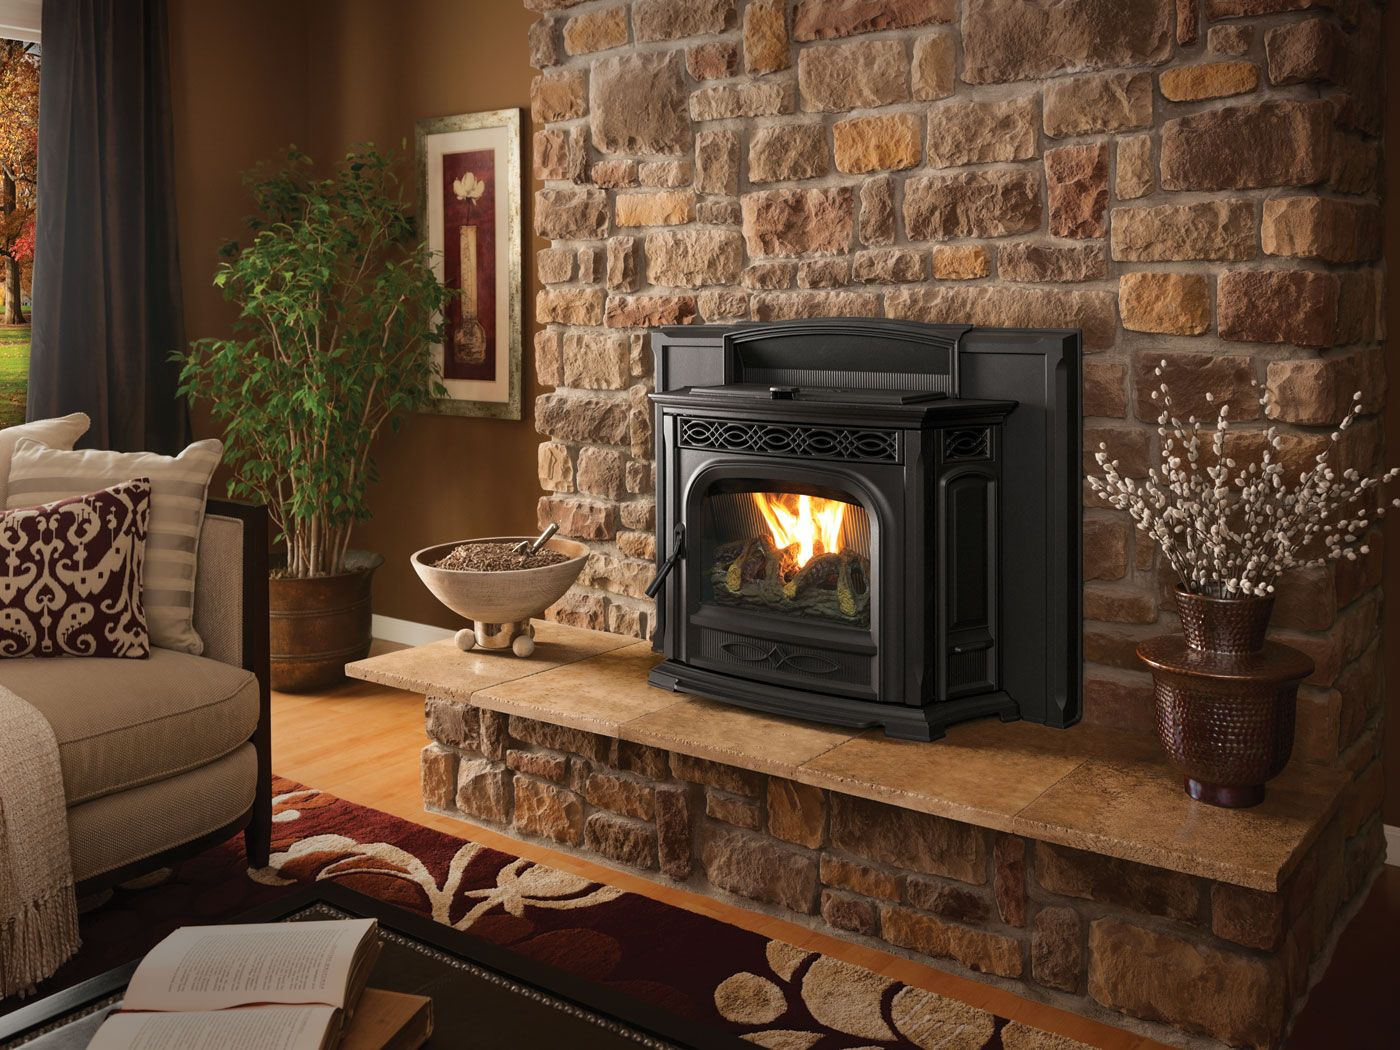 best 25 pellet insert ideas on pinterest wood stove fireplace